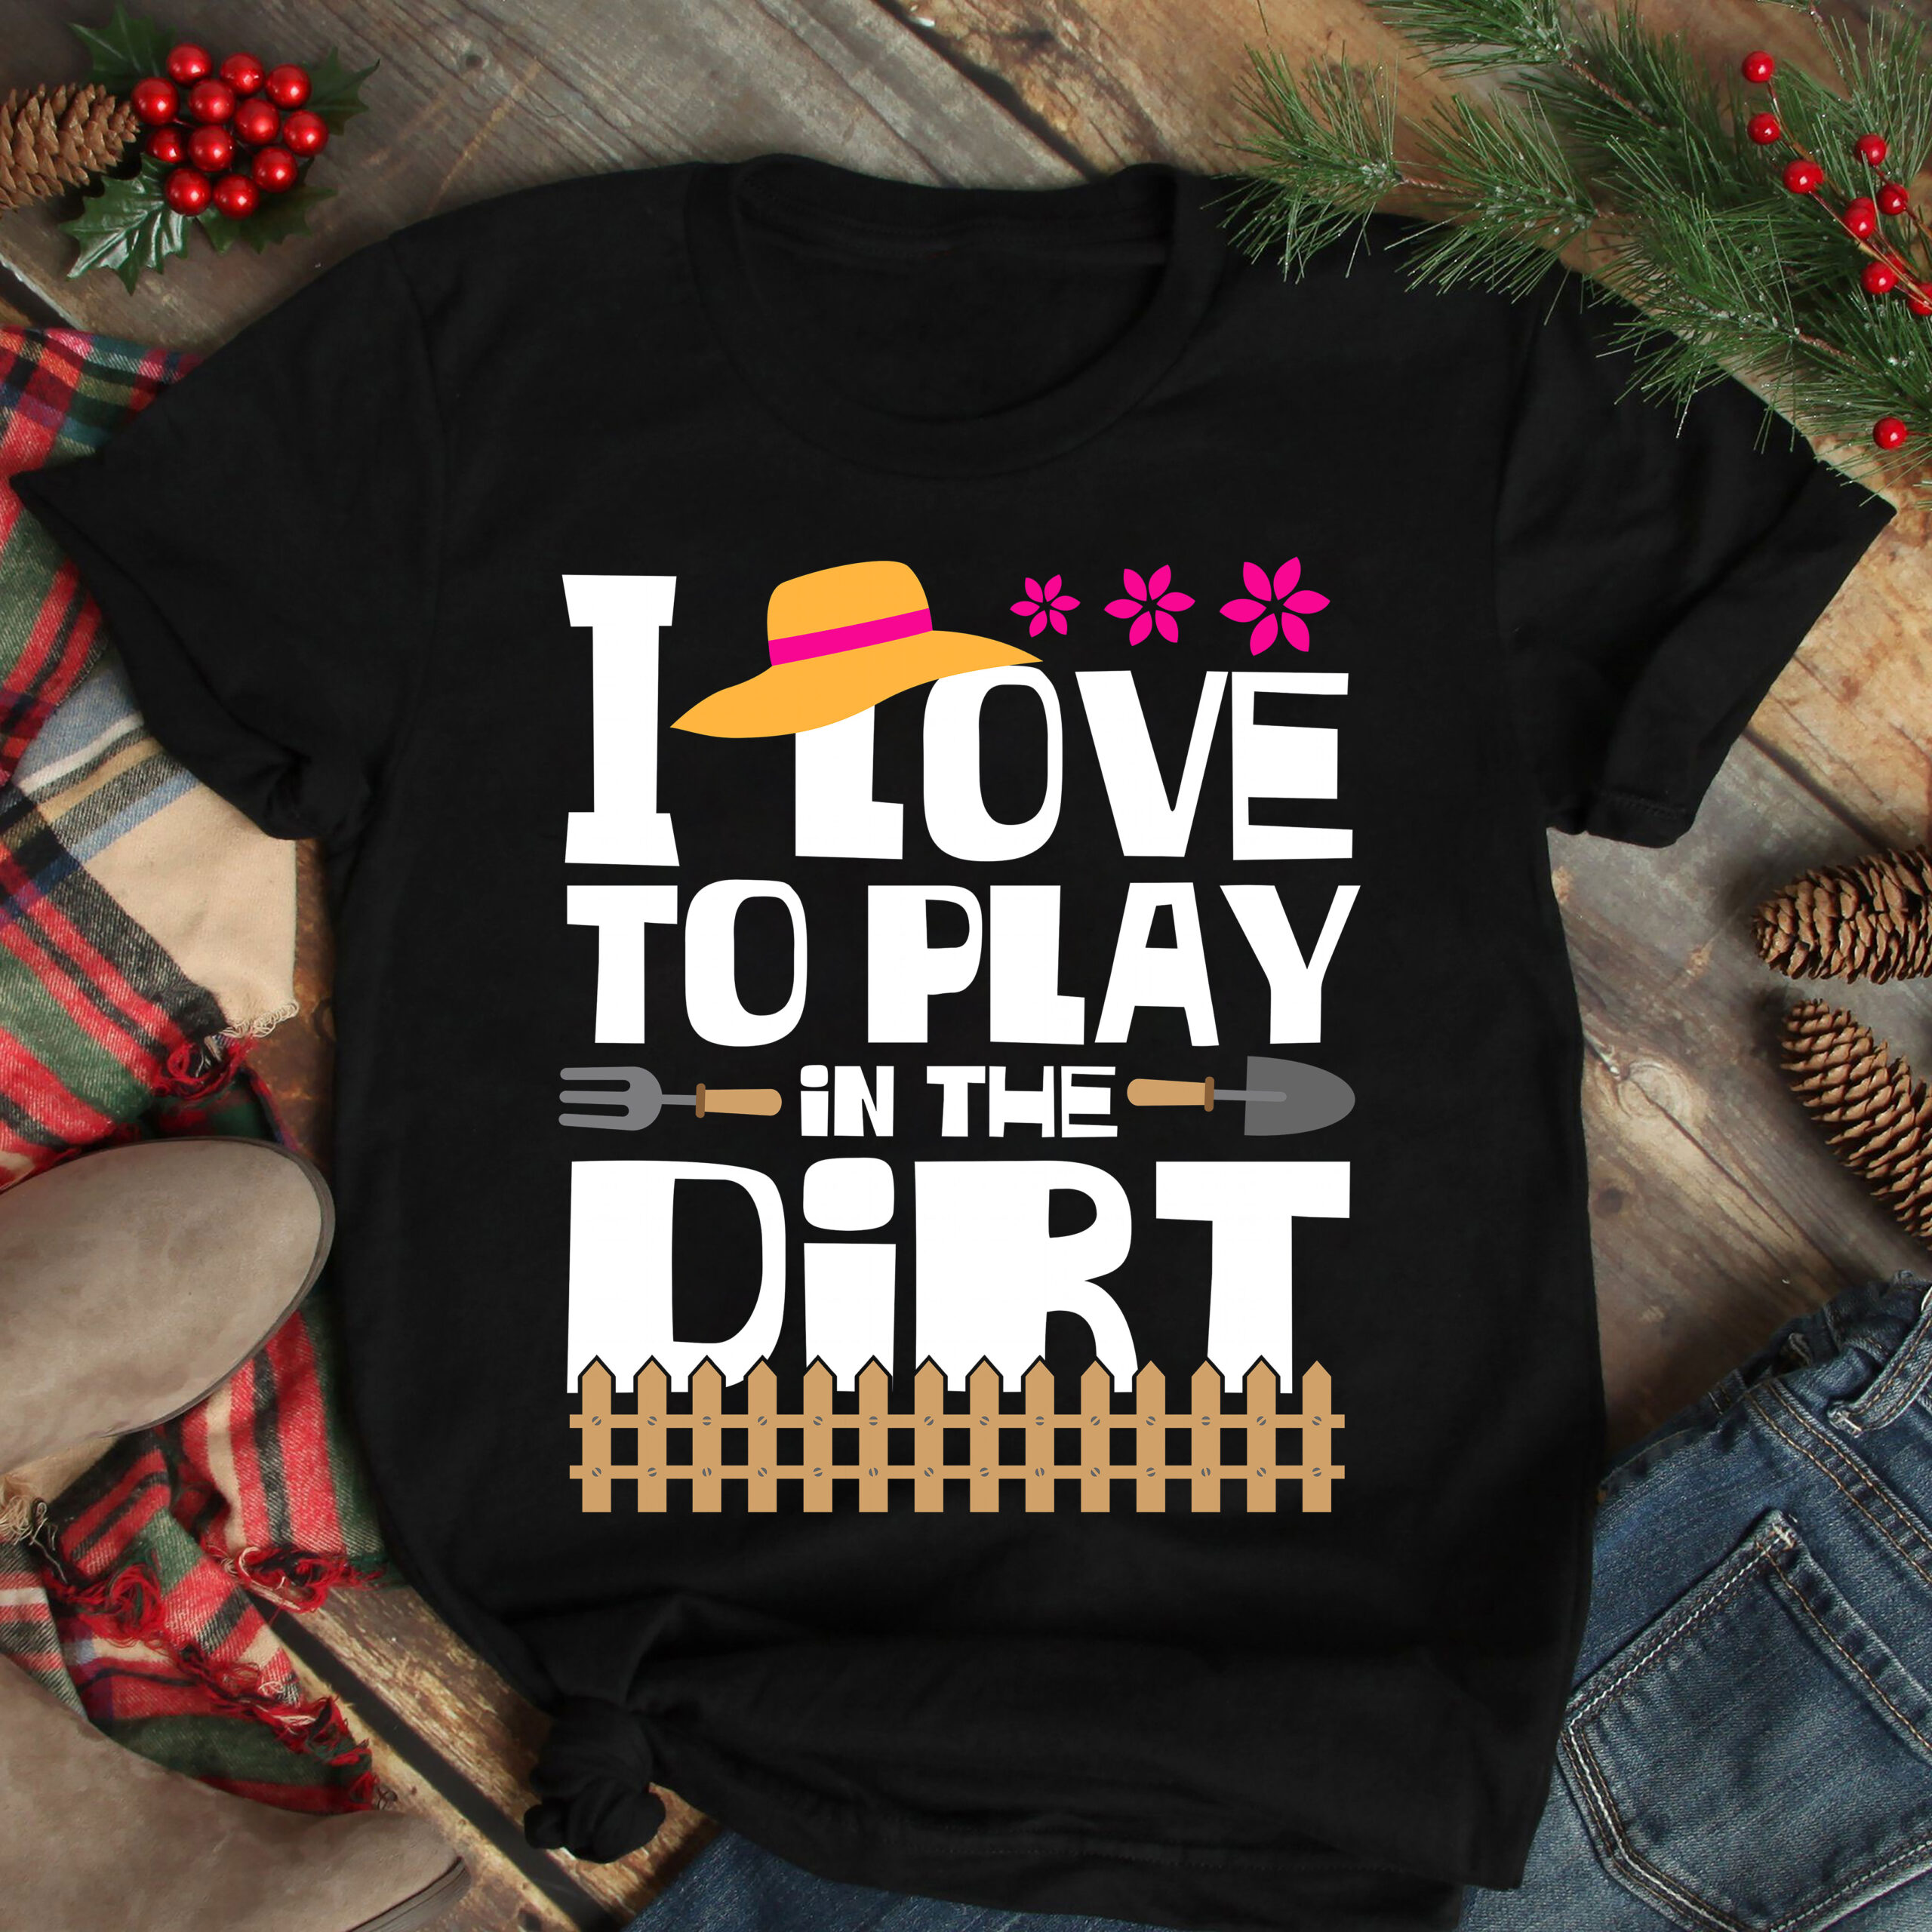 Garden Shirt I Love To Play In The Dirt